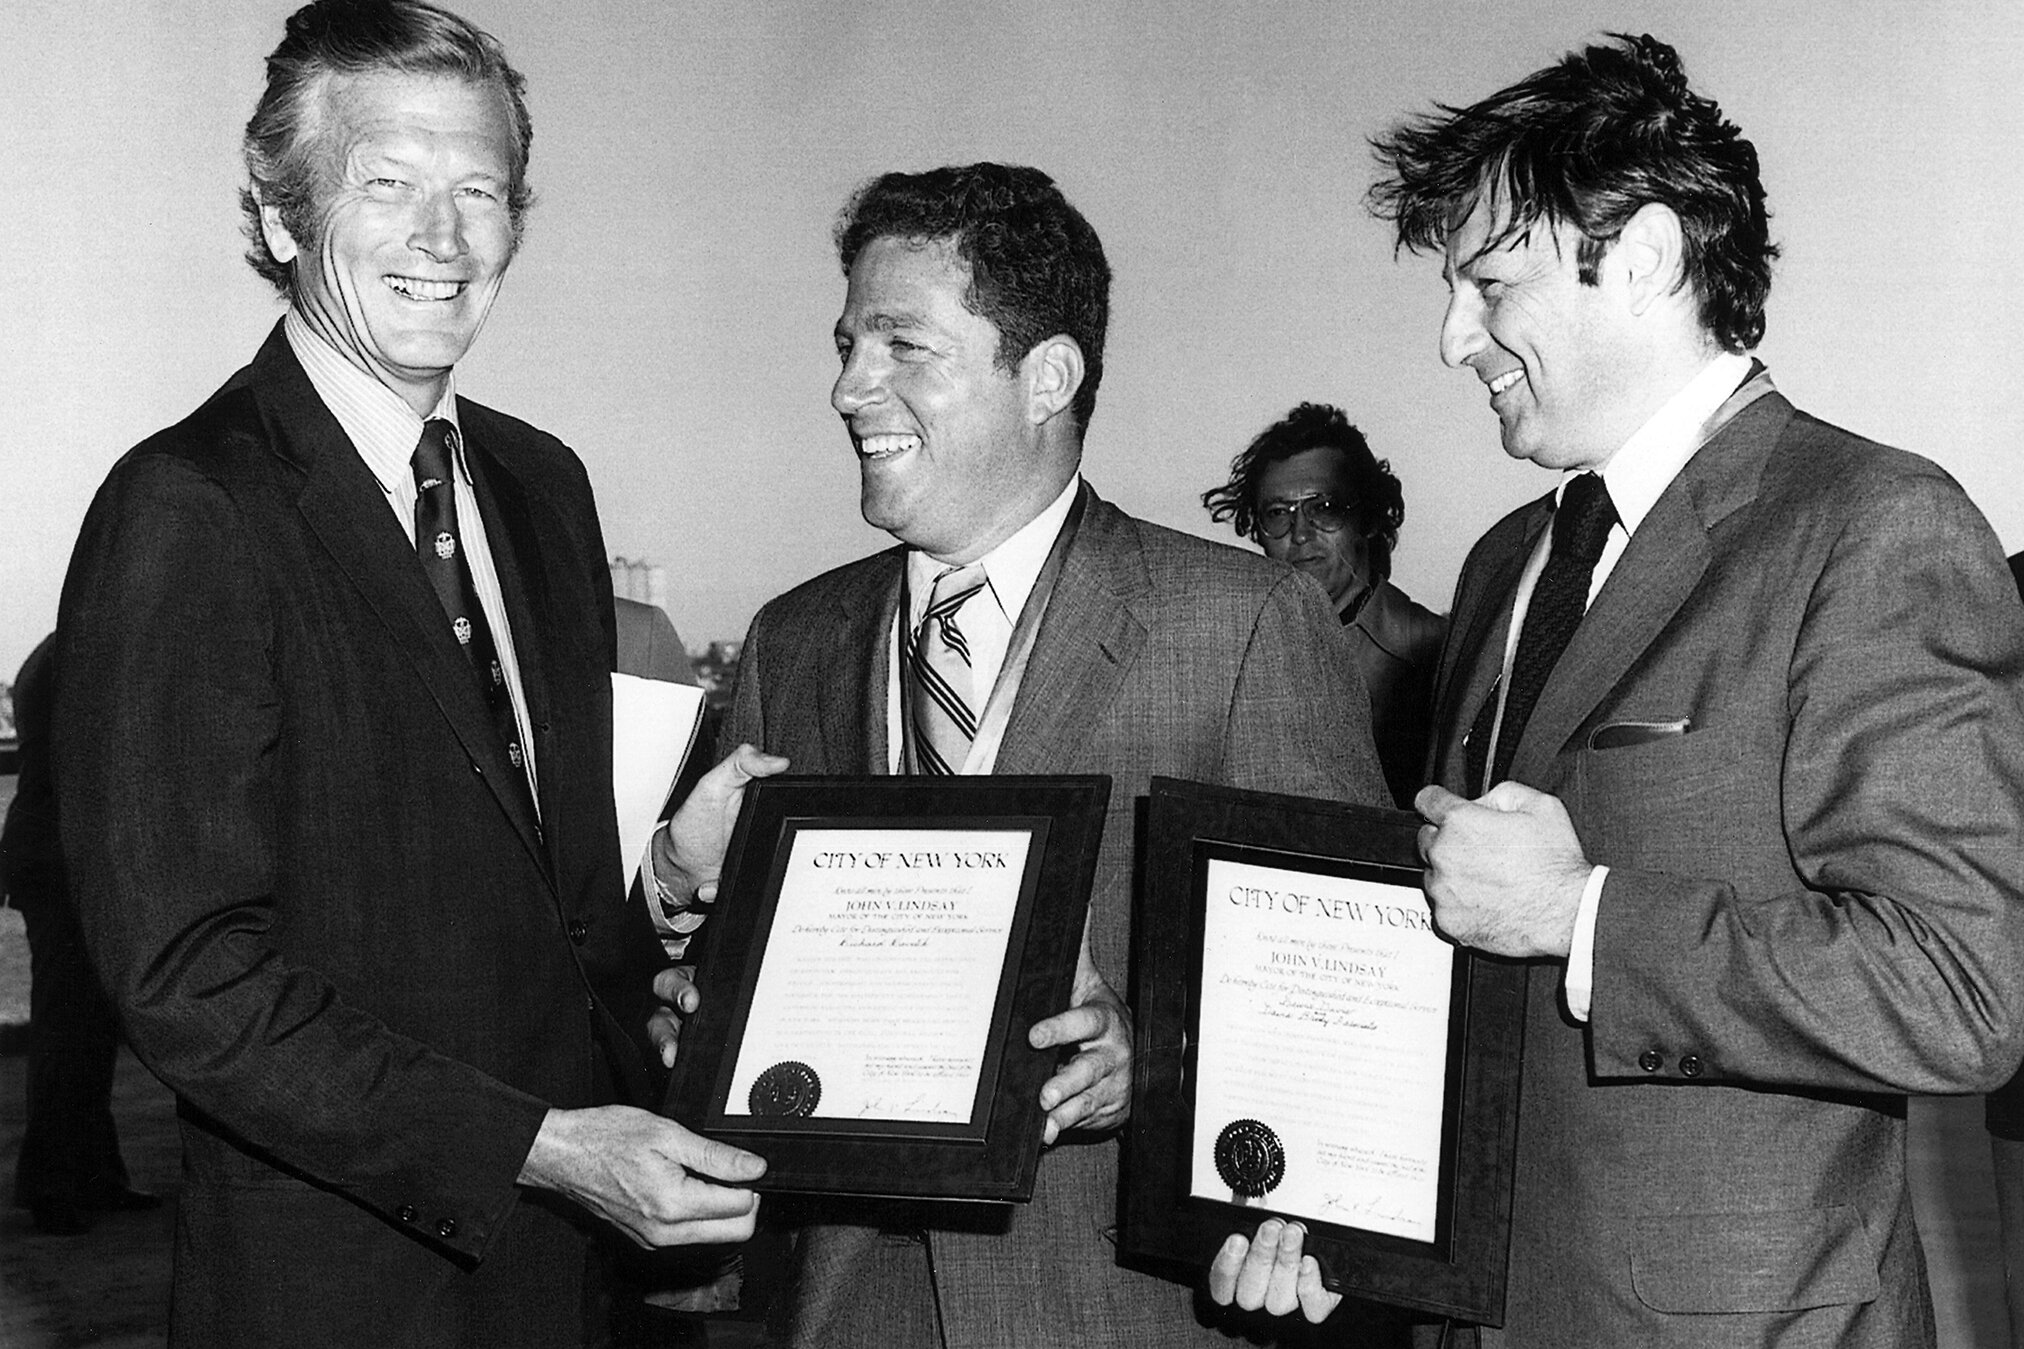 Richard Ravitch (center) and Lew Davis (right) honored for the project by NYC Mayor John Lindsay (1974)